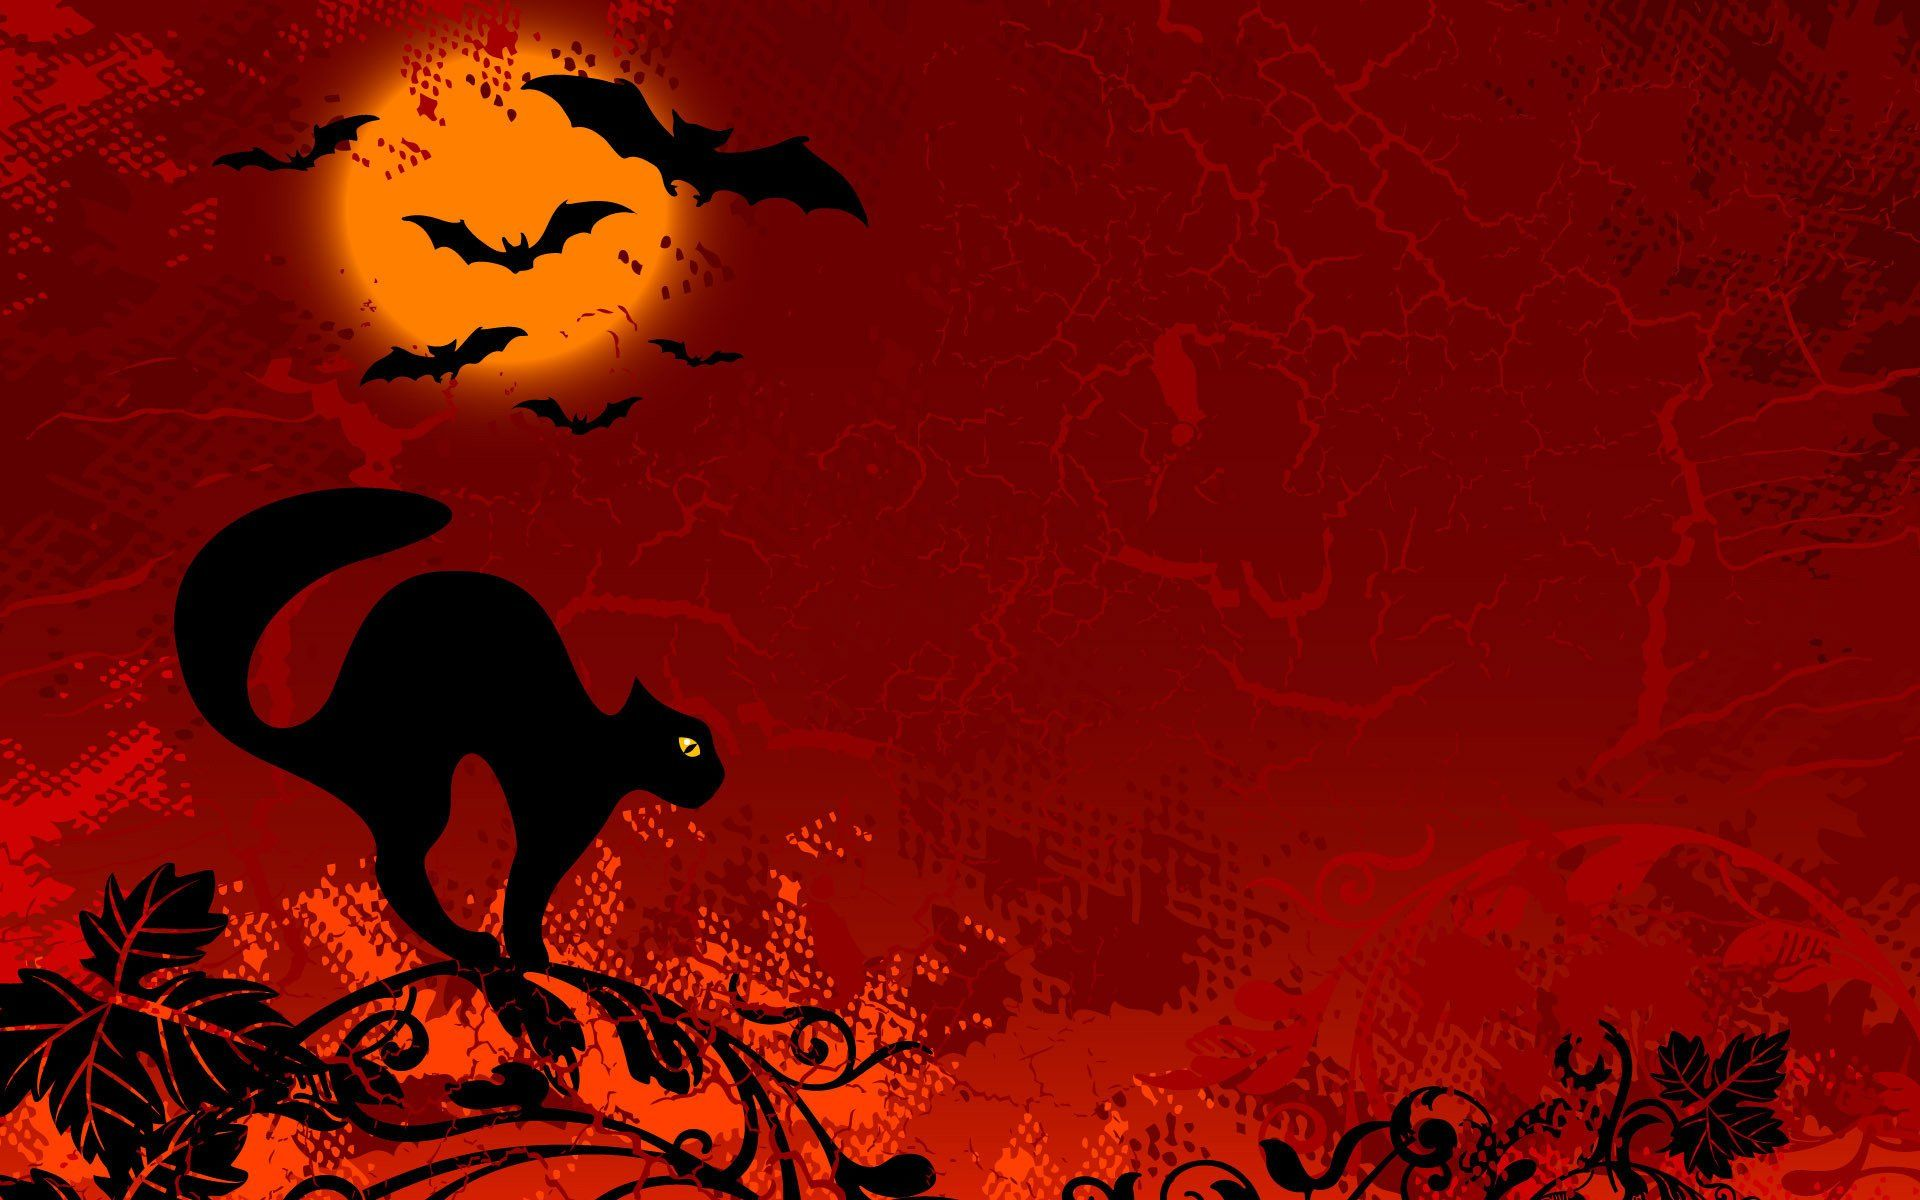 Halloween Hd Wallpapers Backgrounds Wallpaper Halloween Wallpaper Halloween Images Halloween Wallpaper Backgrounds